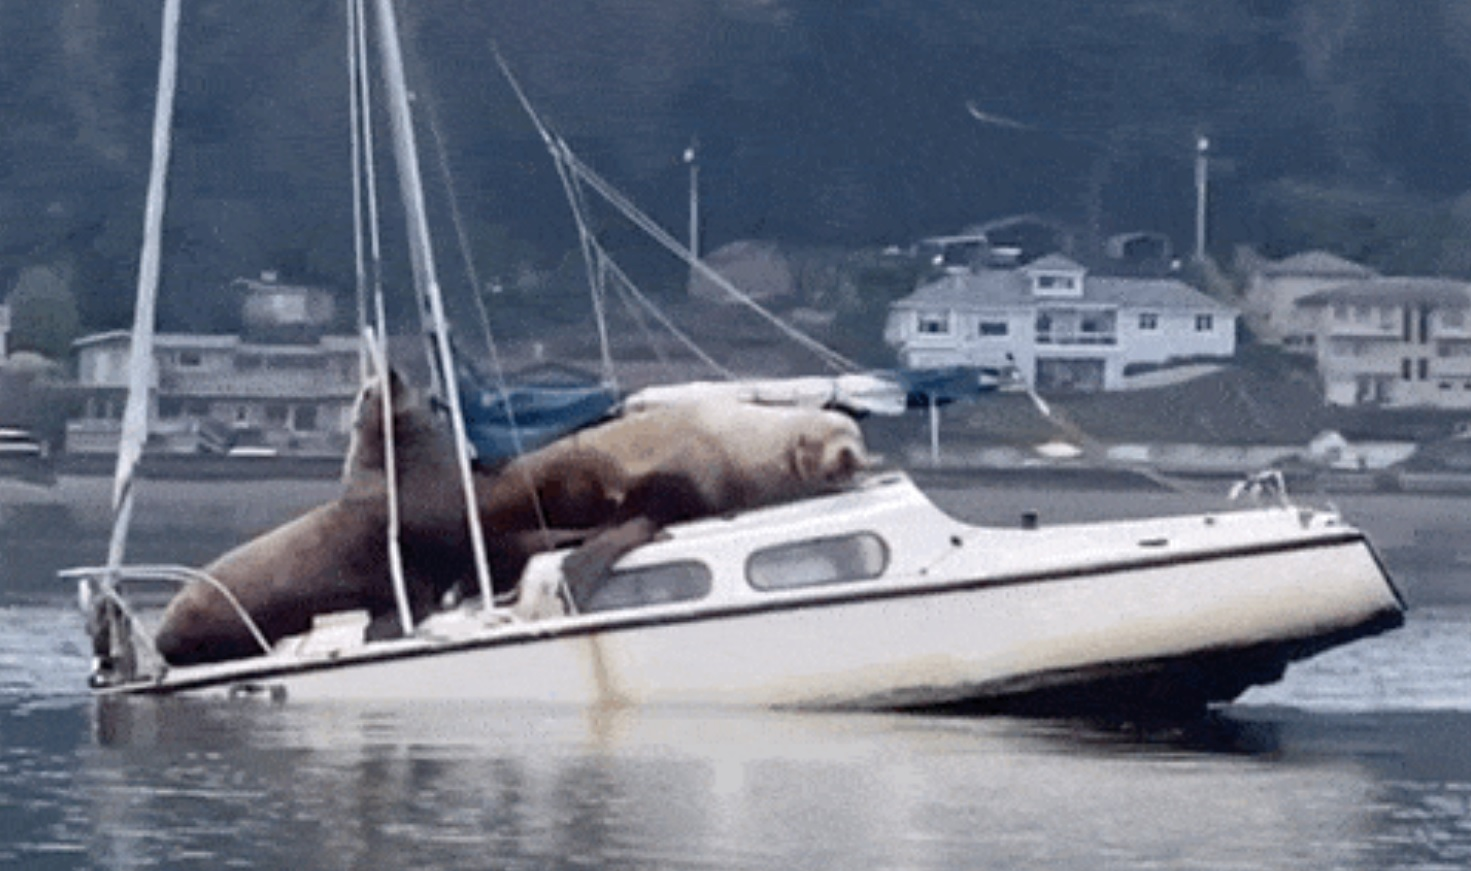 Footage of two Steller sea lions commandeering a small boat in Olympia, Washington has gone viral.